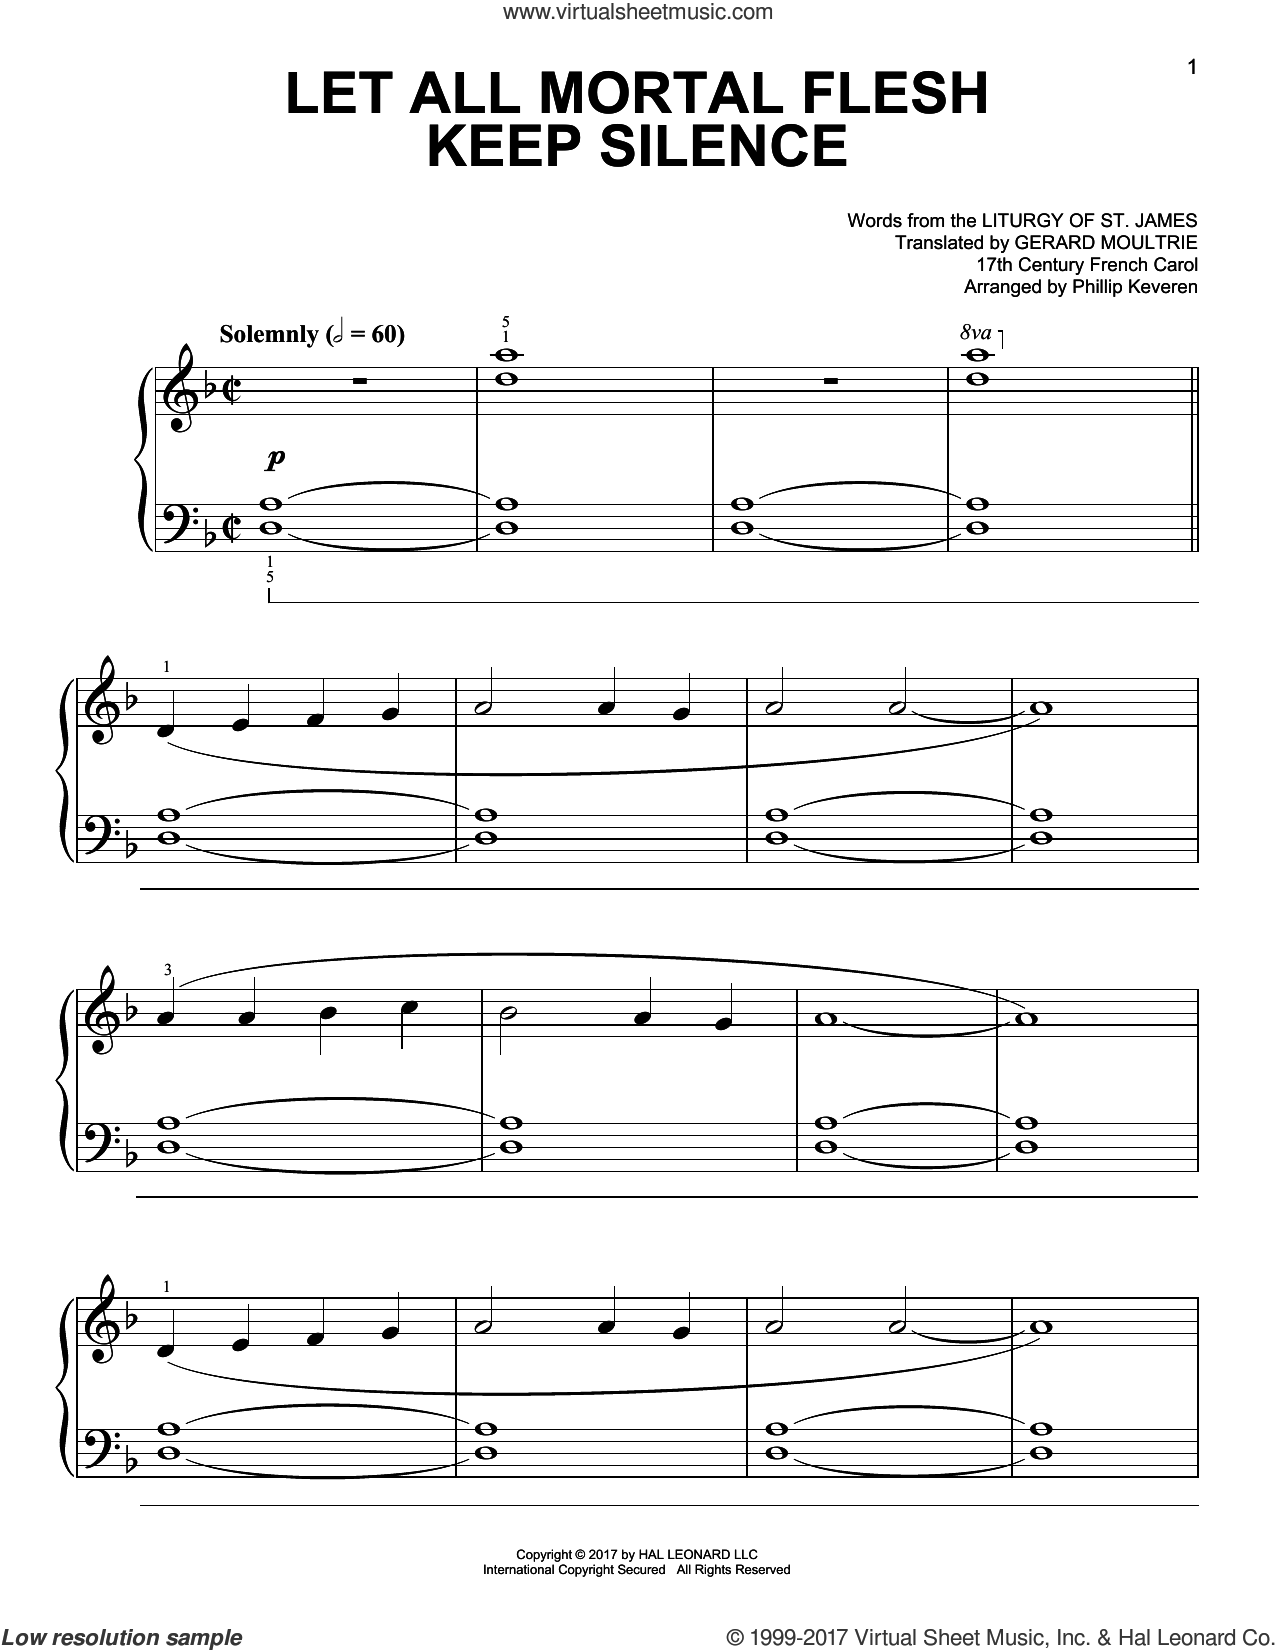 Let All Mortal Flesh Keep Silence sheet music for piano solo by Phillip Keveren, Gerard Moultrie, Liturgy Of St. James and Miscellaneous, easy